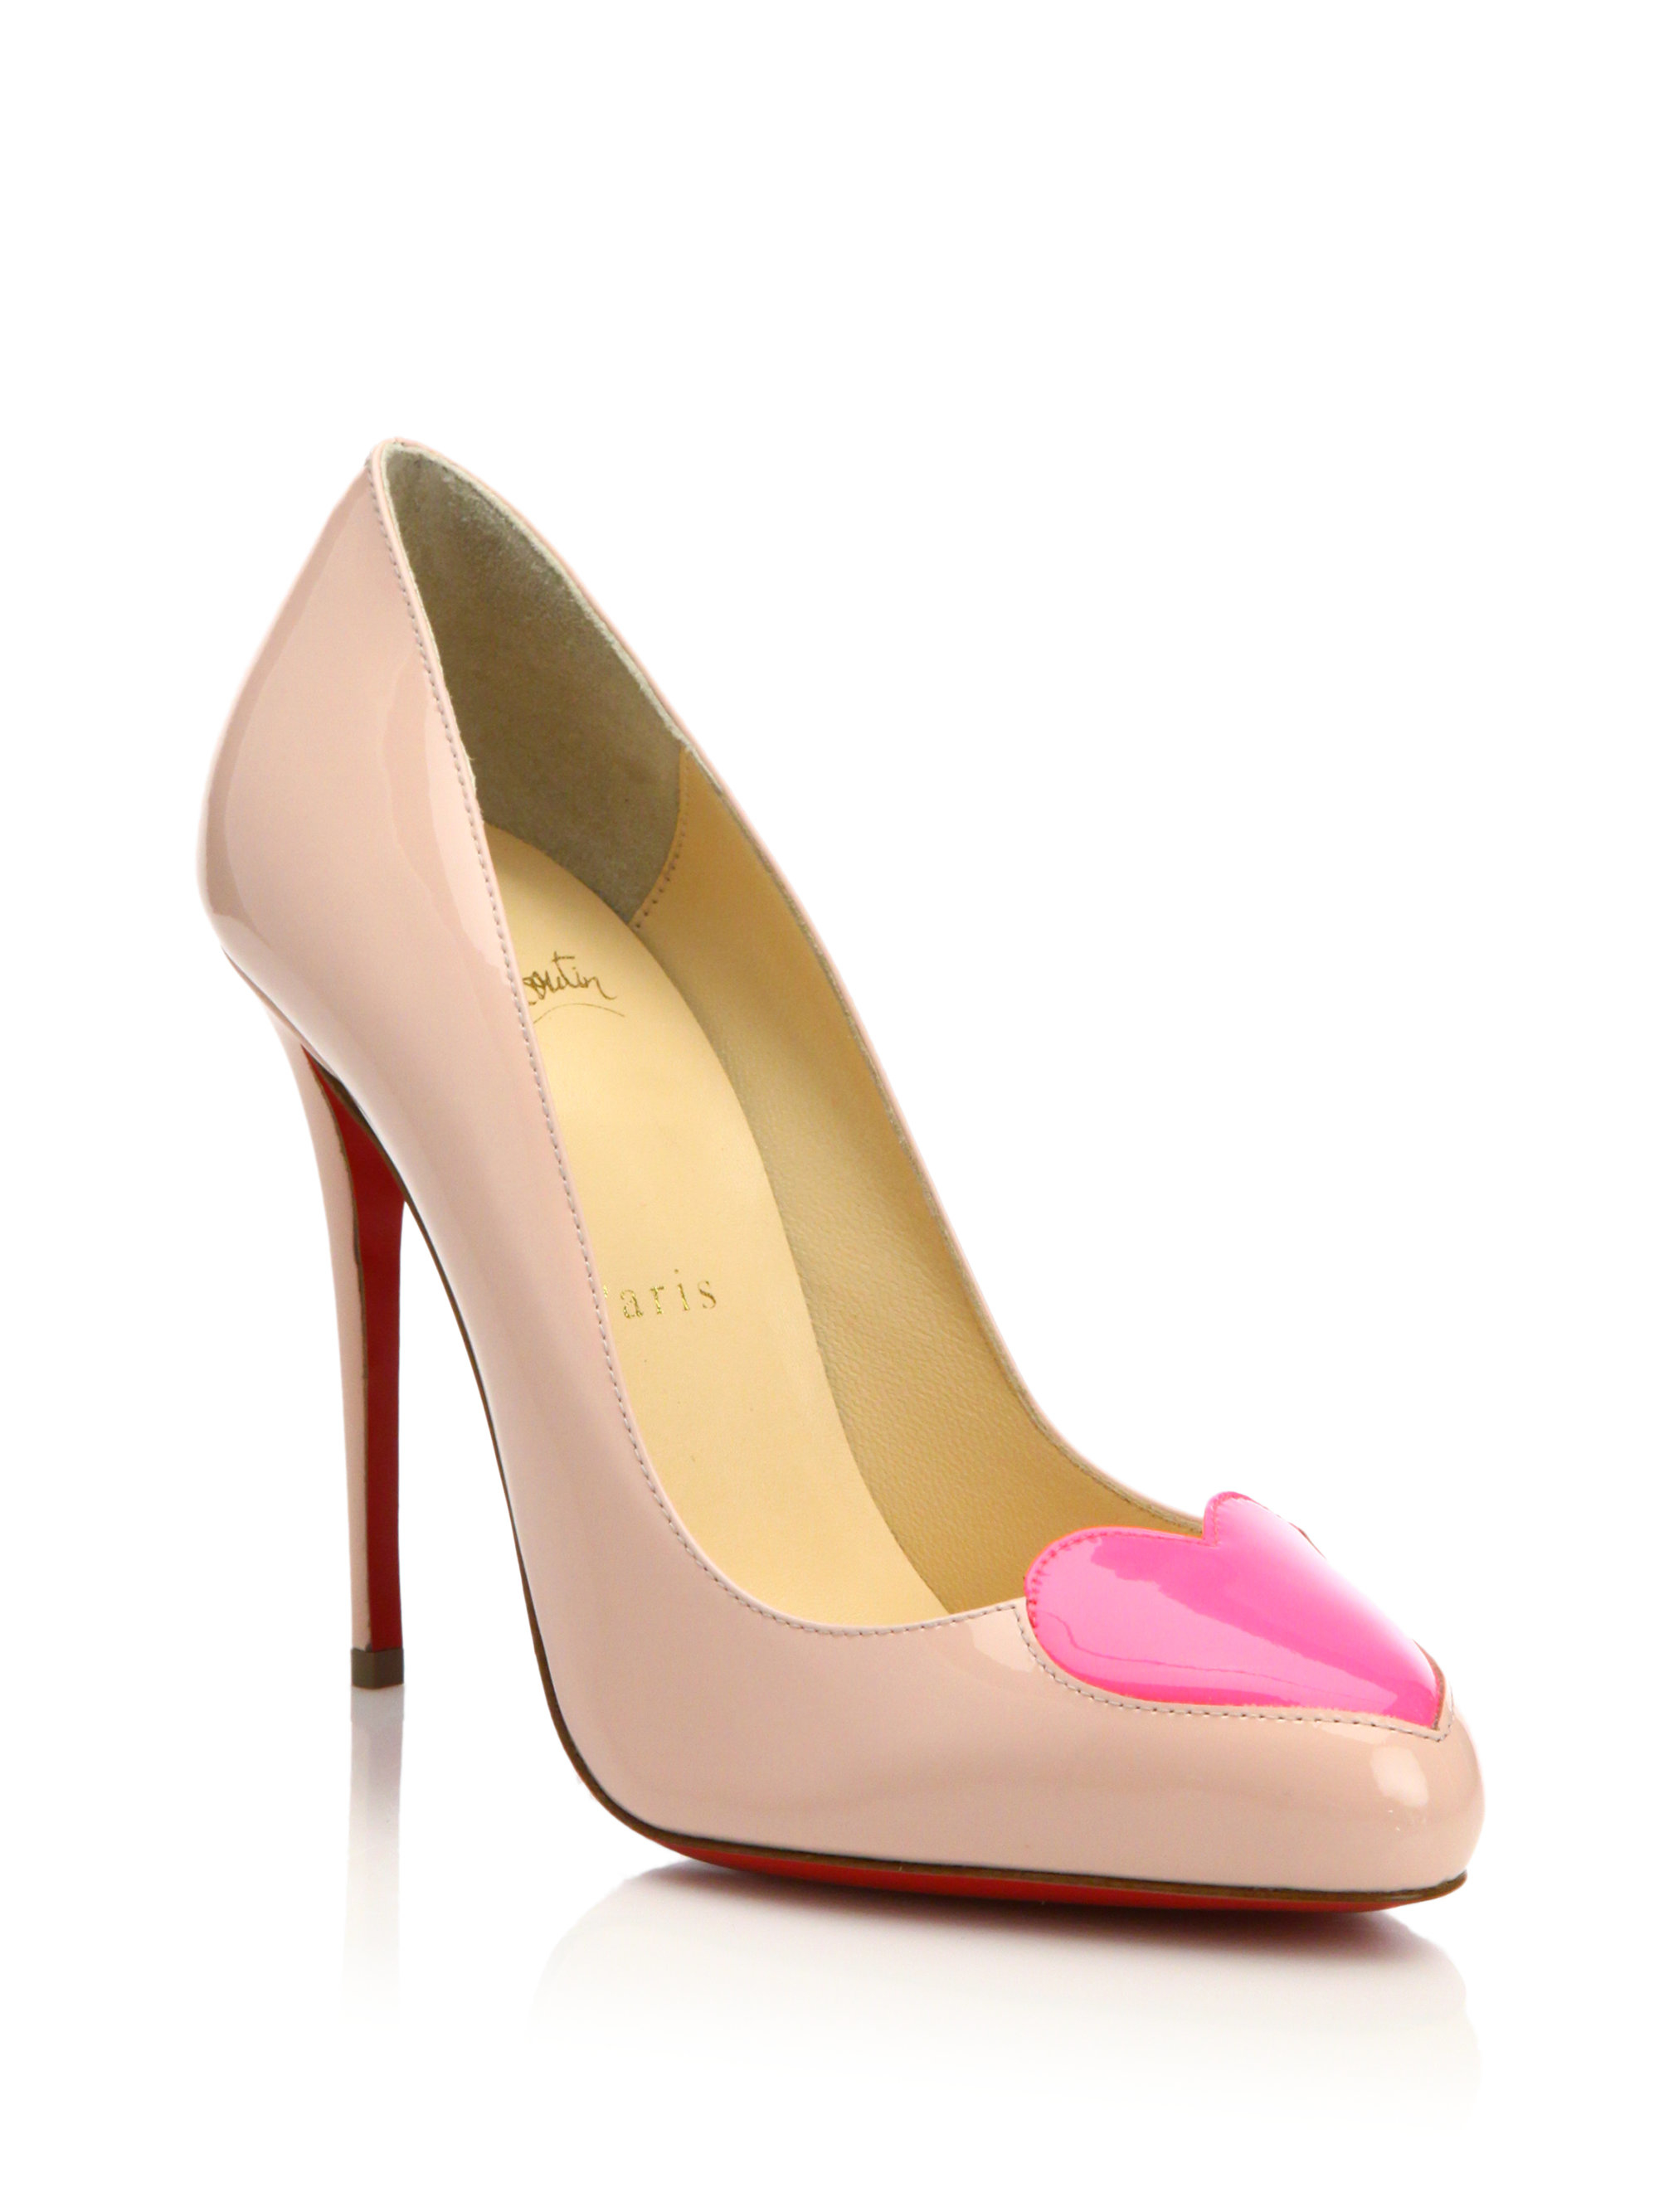 e2d9b0764d7 Lyst - Christian Louboutin Doracora Heart Patent Leather Pumps in Pink